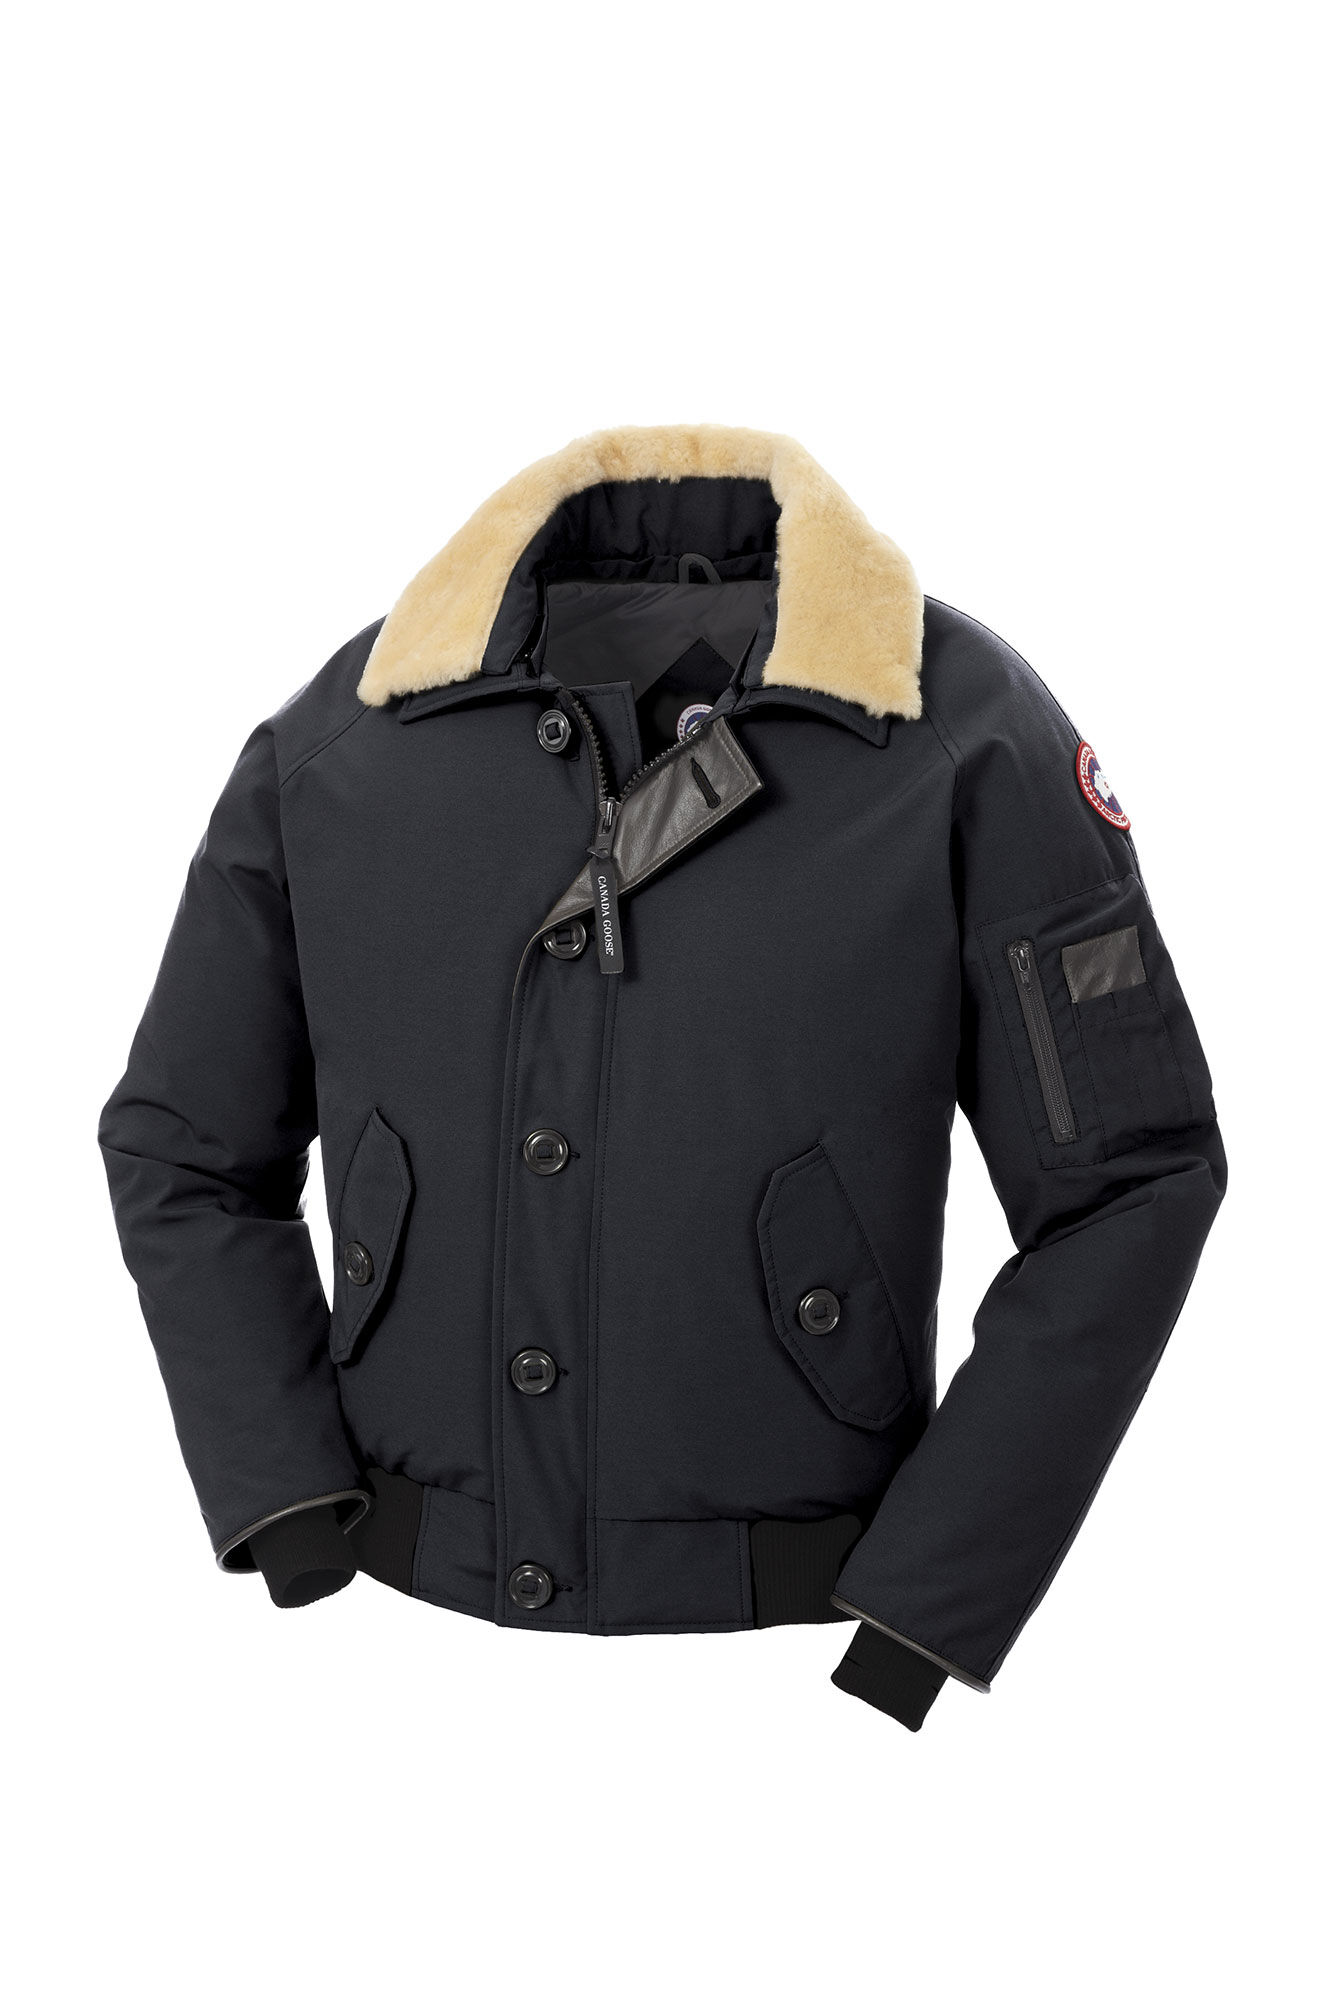 Canada Goose down replica cheap - Mens Extreme Weather Outerwear | Canada Goose?